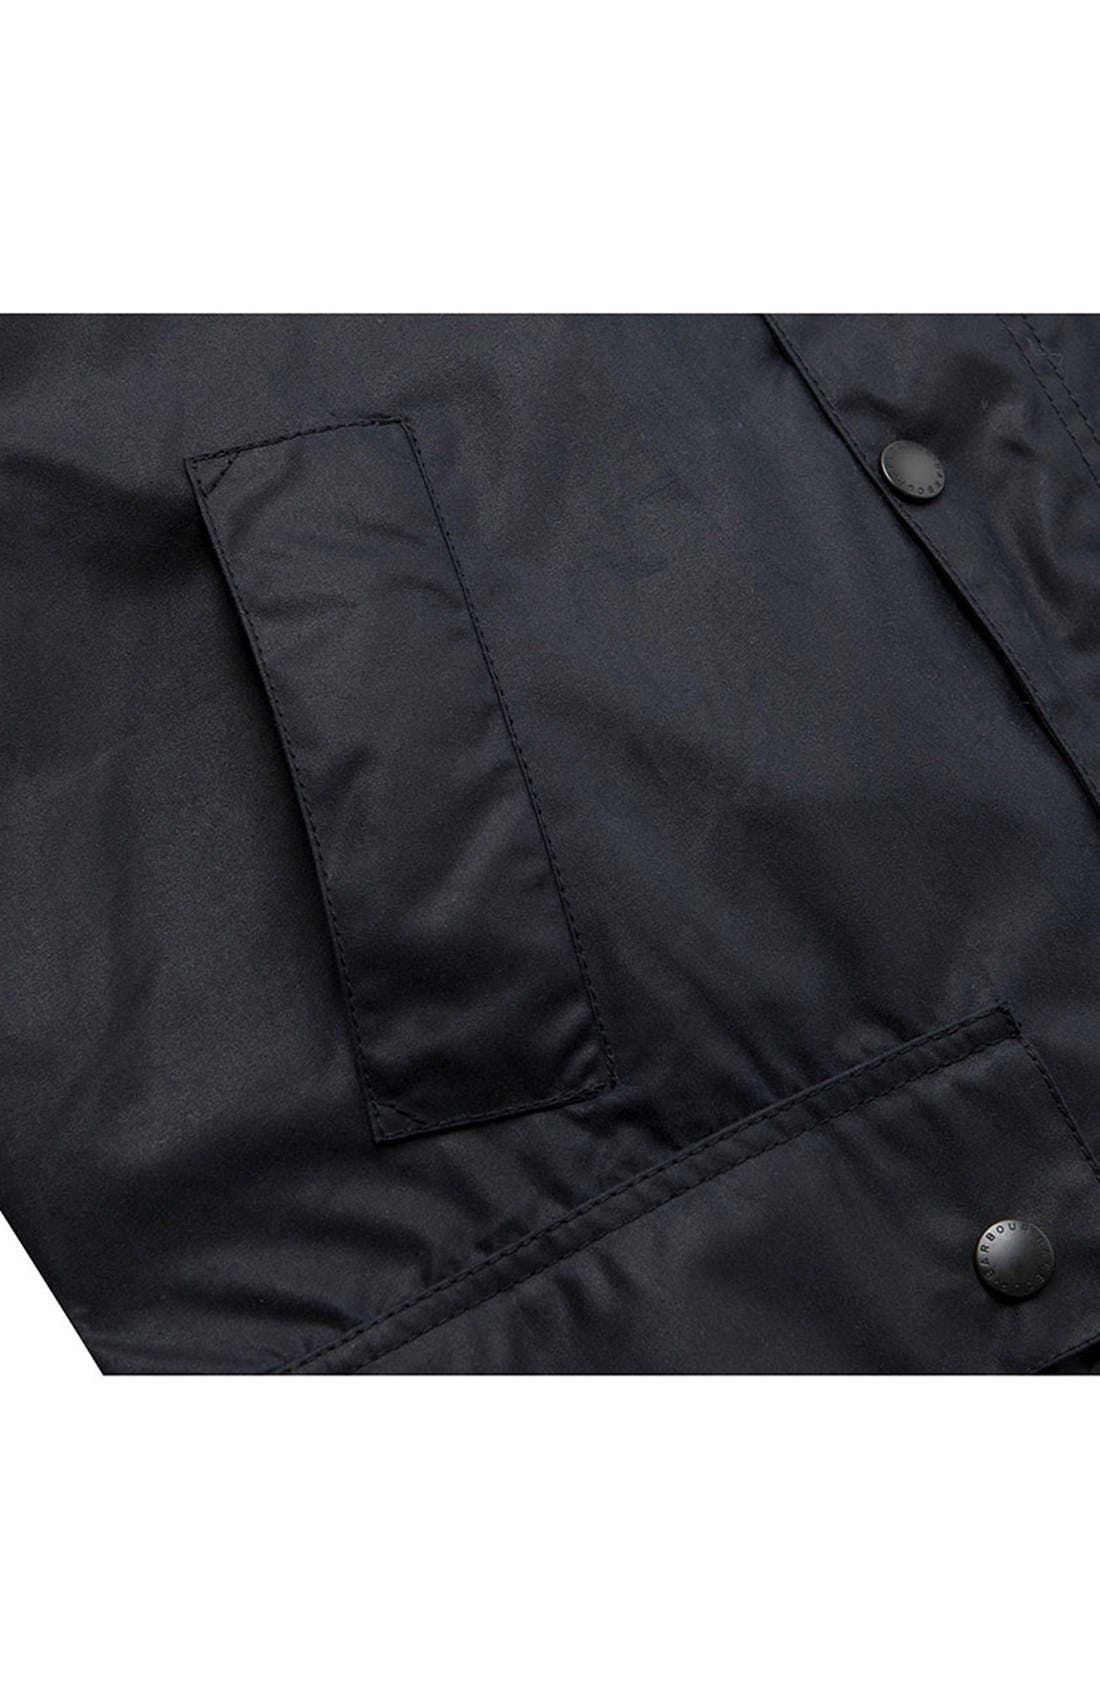 BARBOUR, 'Bedale' Regular Fit Waxed Cotton Jacket, Alternate thumbnail 6, color, NAVY